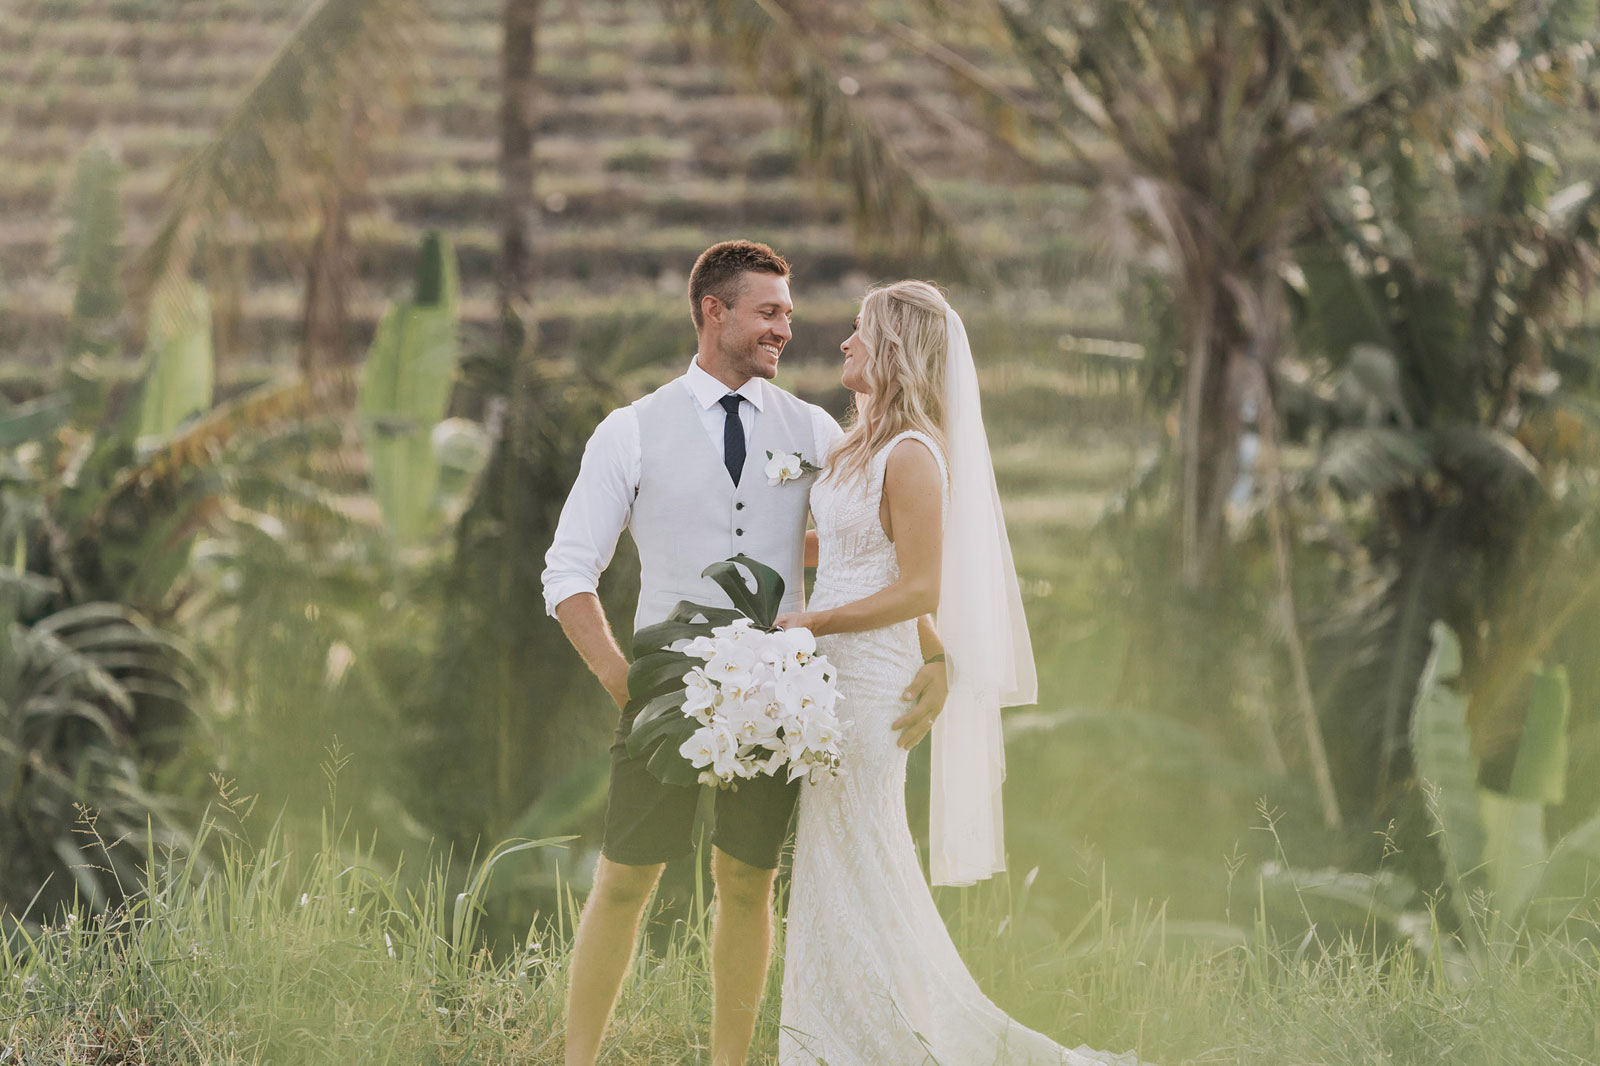 newfound-t-k-canggu-bali-ubud-wedding-photographer-595